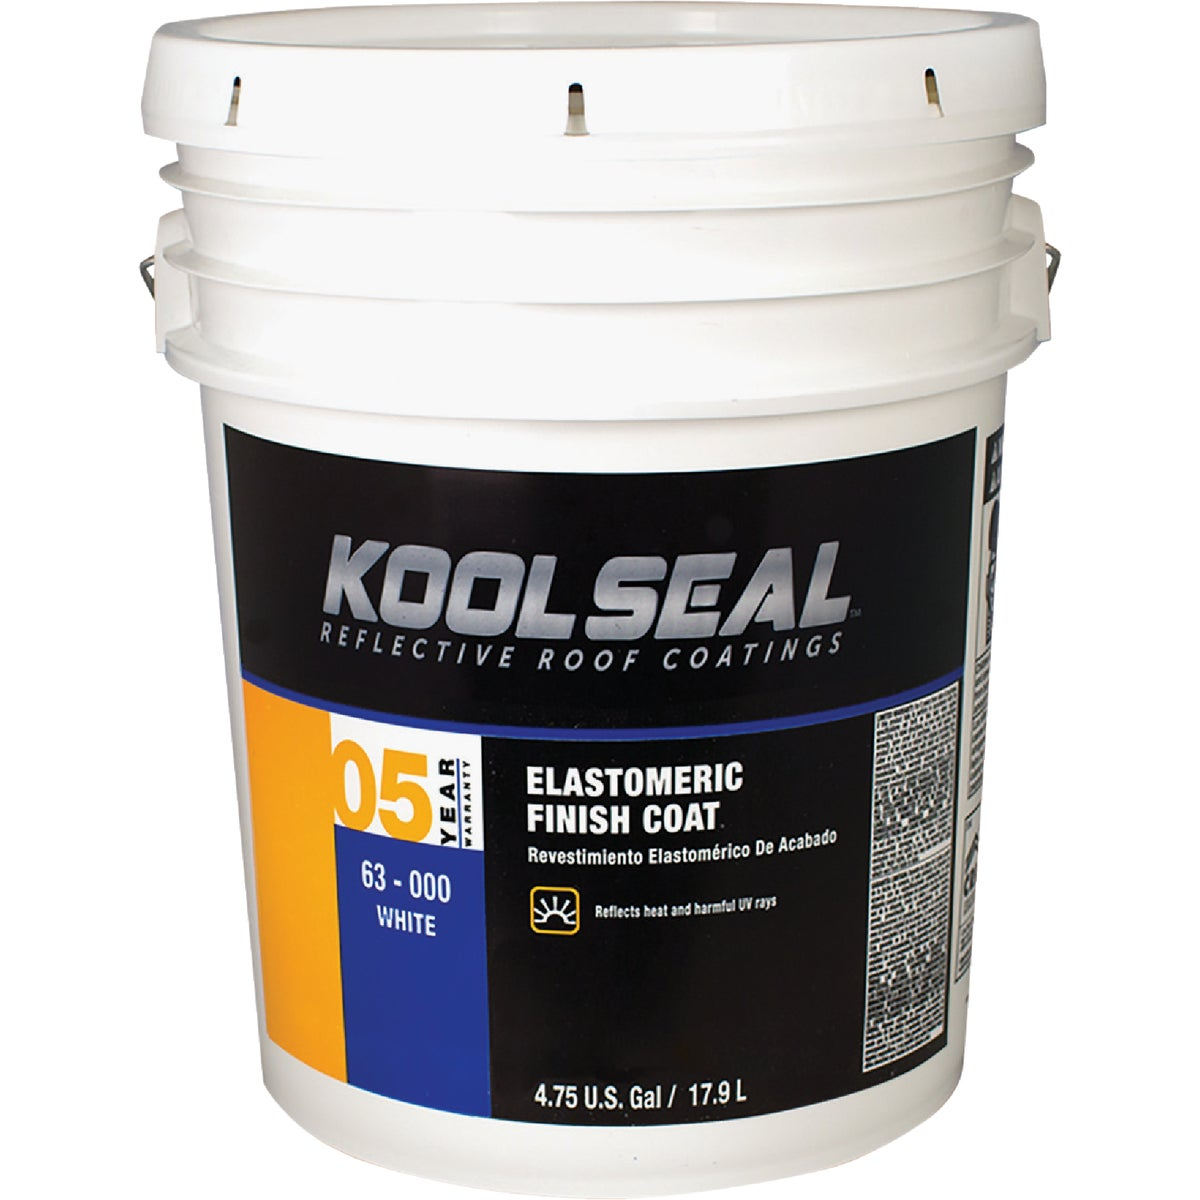 5GAL ELASTMRC RF COATING - KST062600-20 by Kool Seal